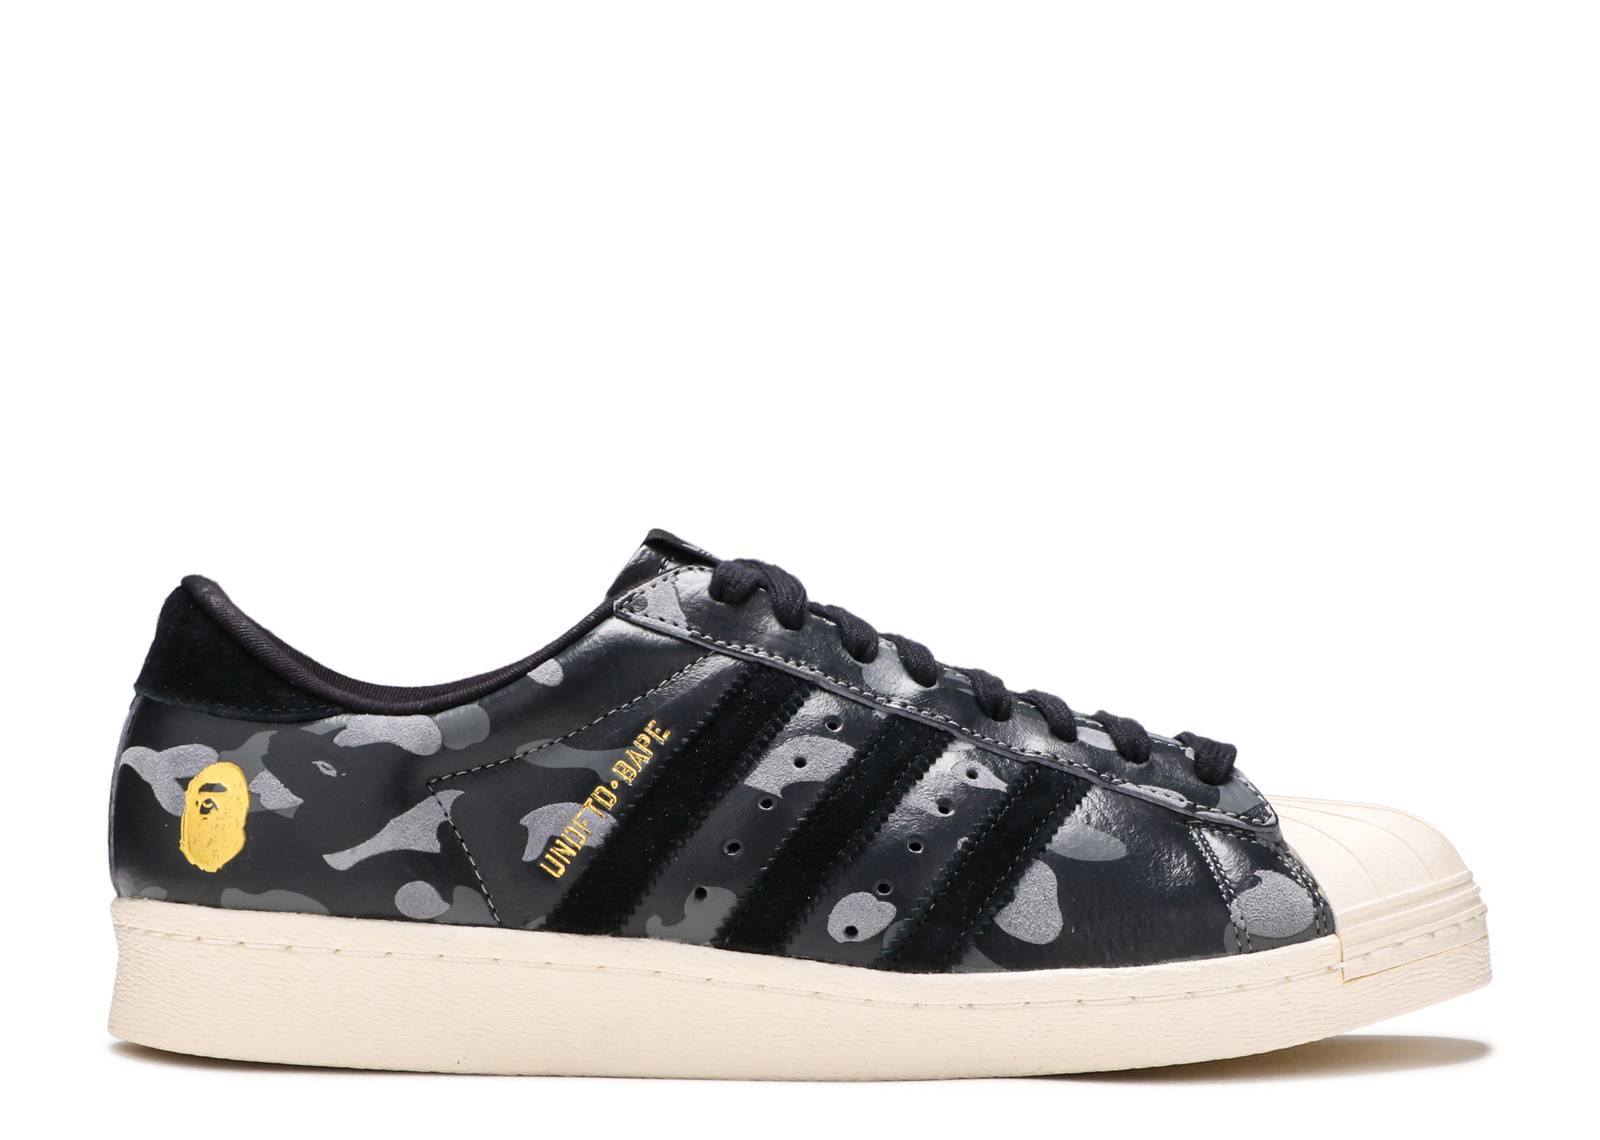 ca70e169ffae Adidas Superstar Shoes - Adidas Originals